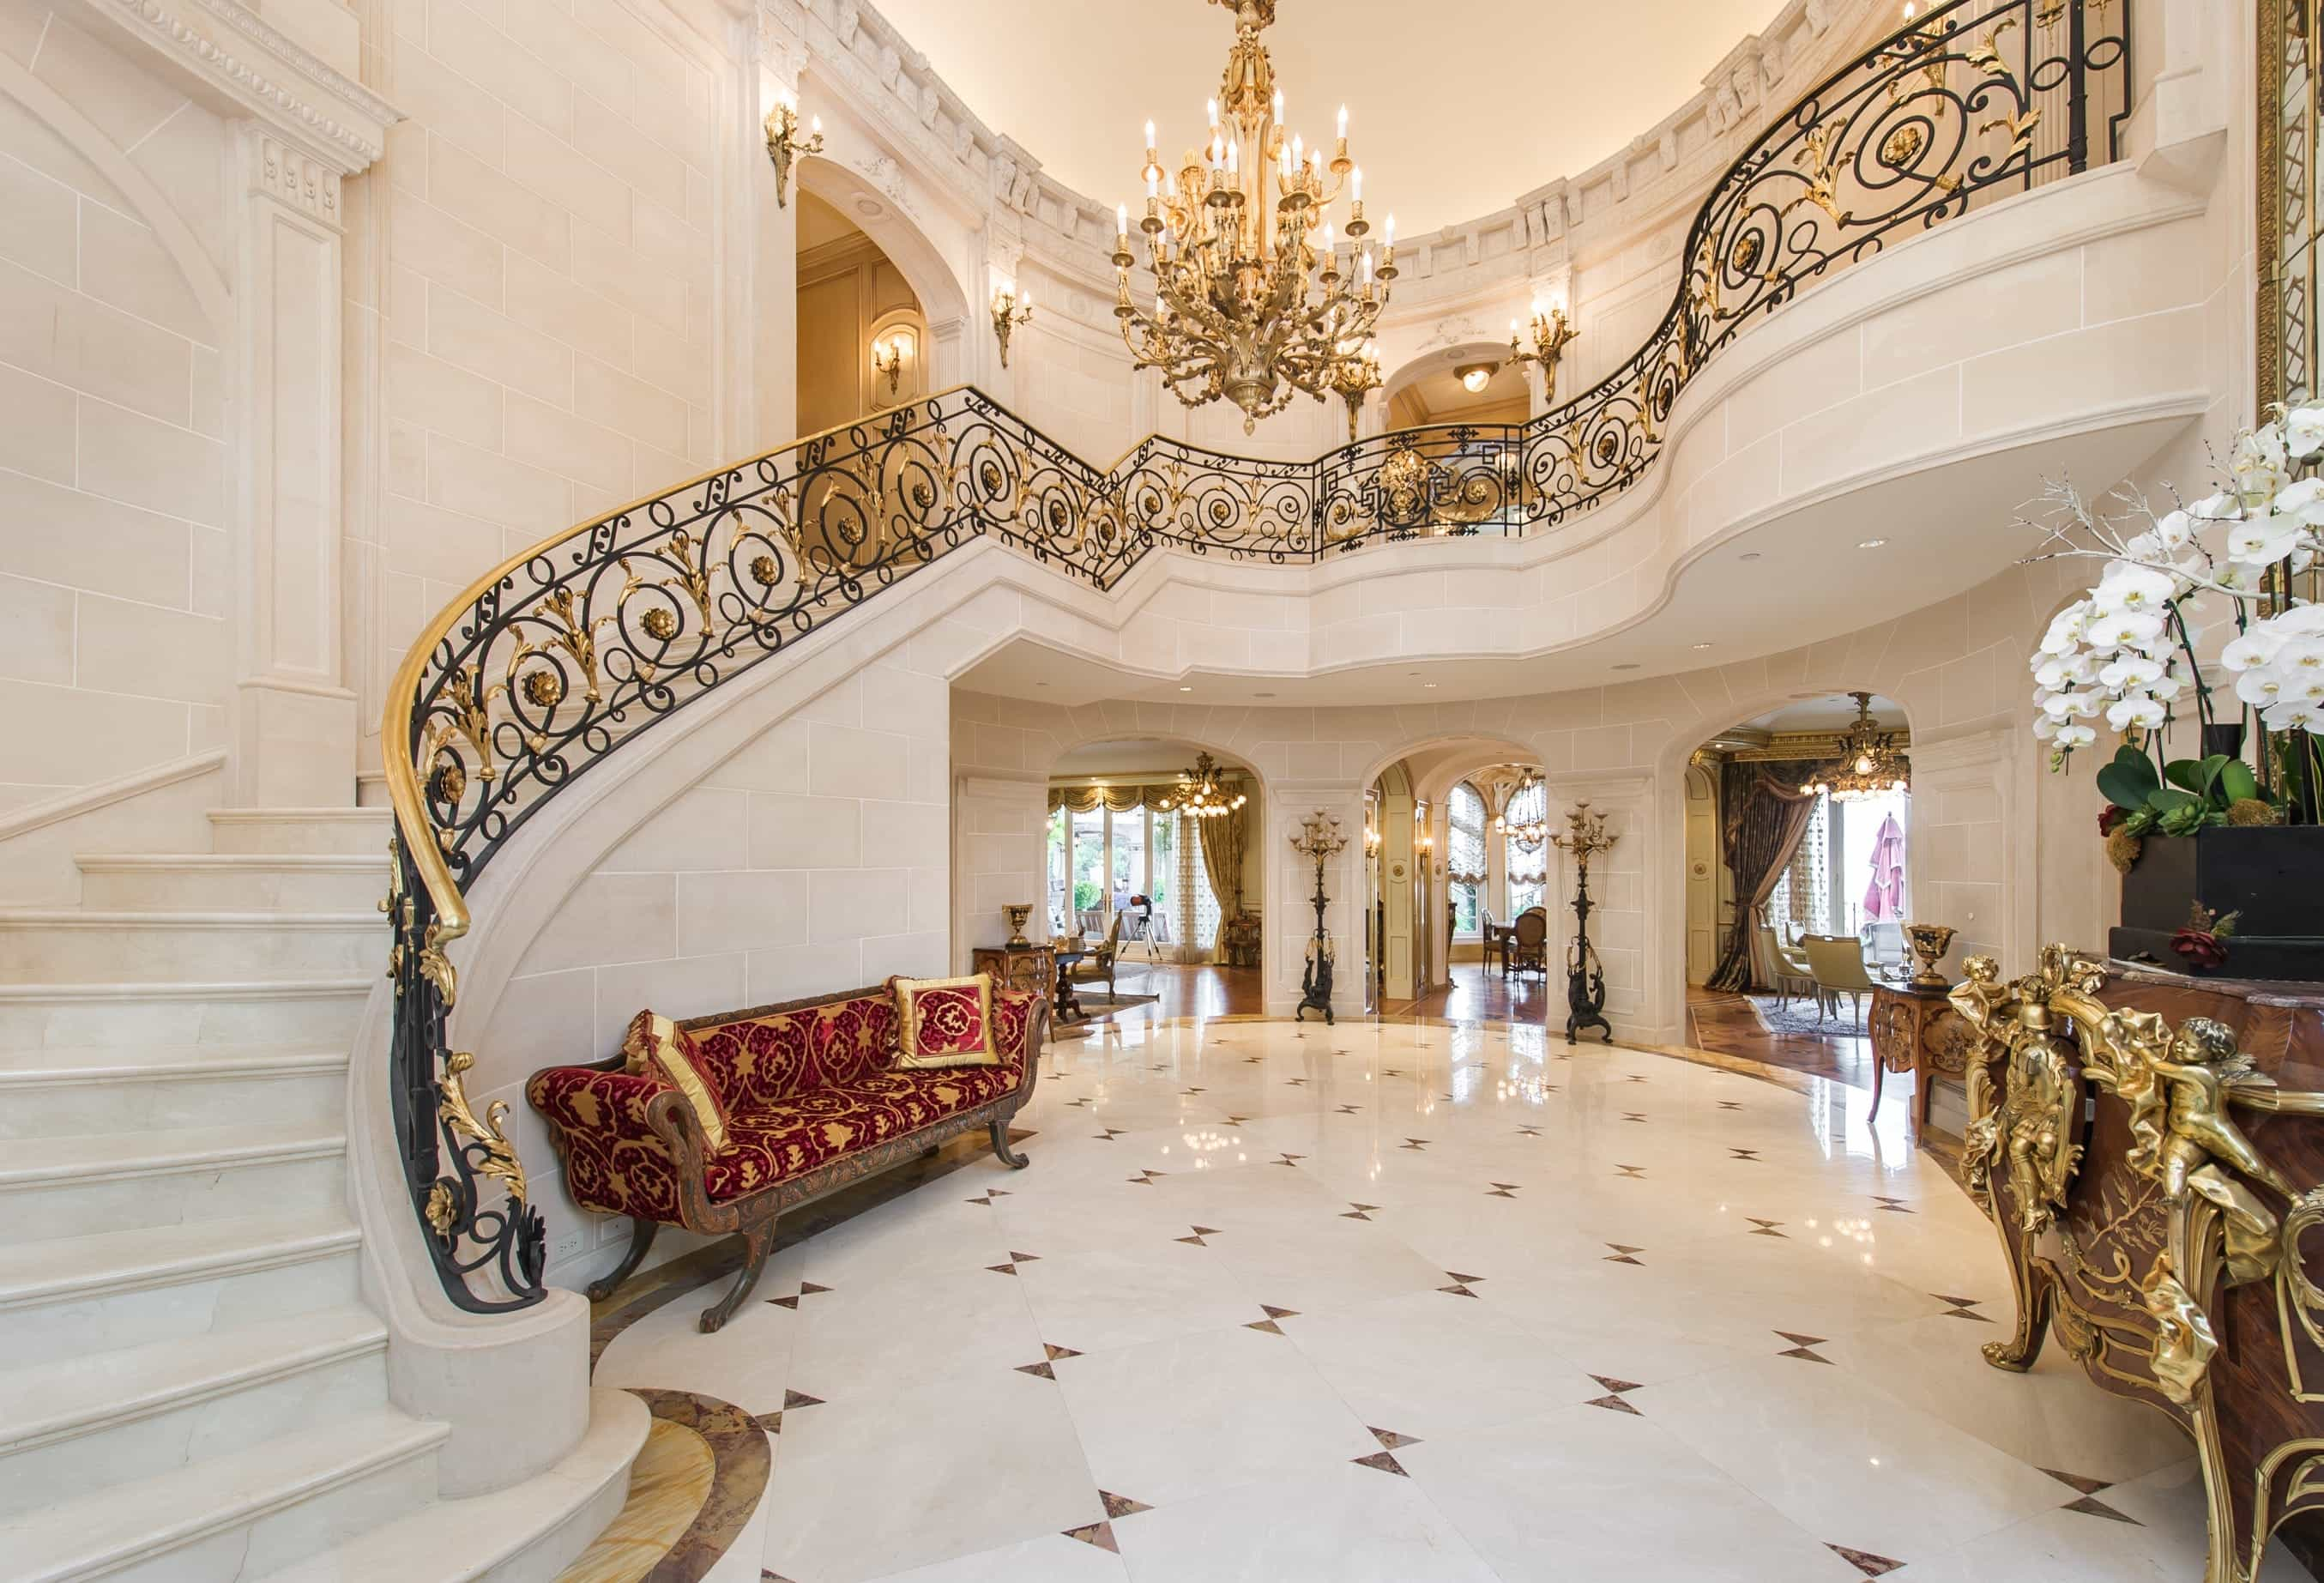 Stunning Luxury European Interior With Marble Flooring And Marble Staircase With Crystal Chandelier (Image 11 of 13)